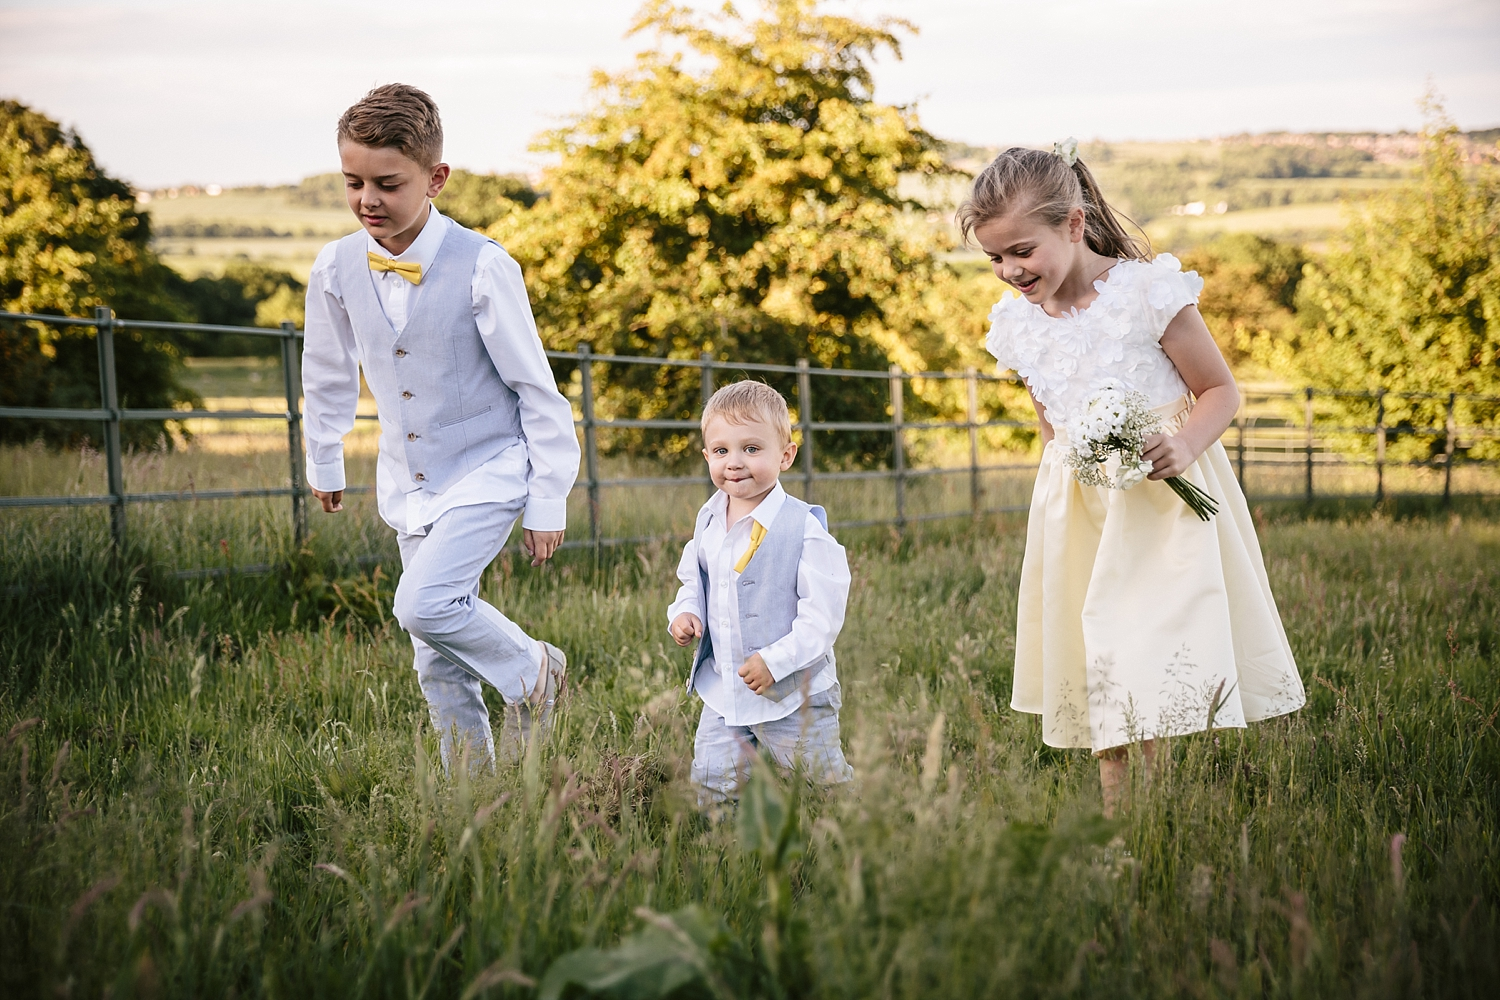 Natlie-Matthew-yorkshire-natural-relaxed-fun-documentary-reportage-candid-wedding-photography-photographer-Derby-Nottingham-Derbyshire-Nottinghamshire-Leicestershire-Lincolnshire-East-Midlands-81.jpg